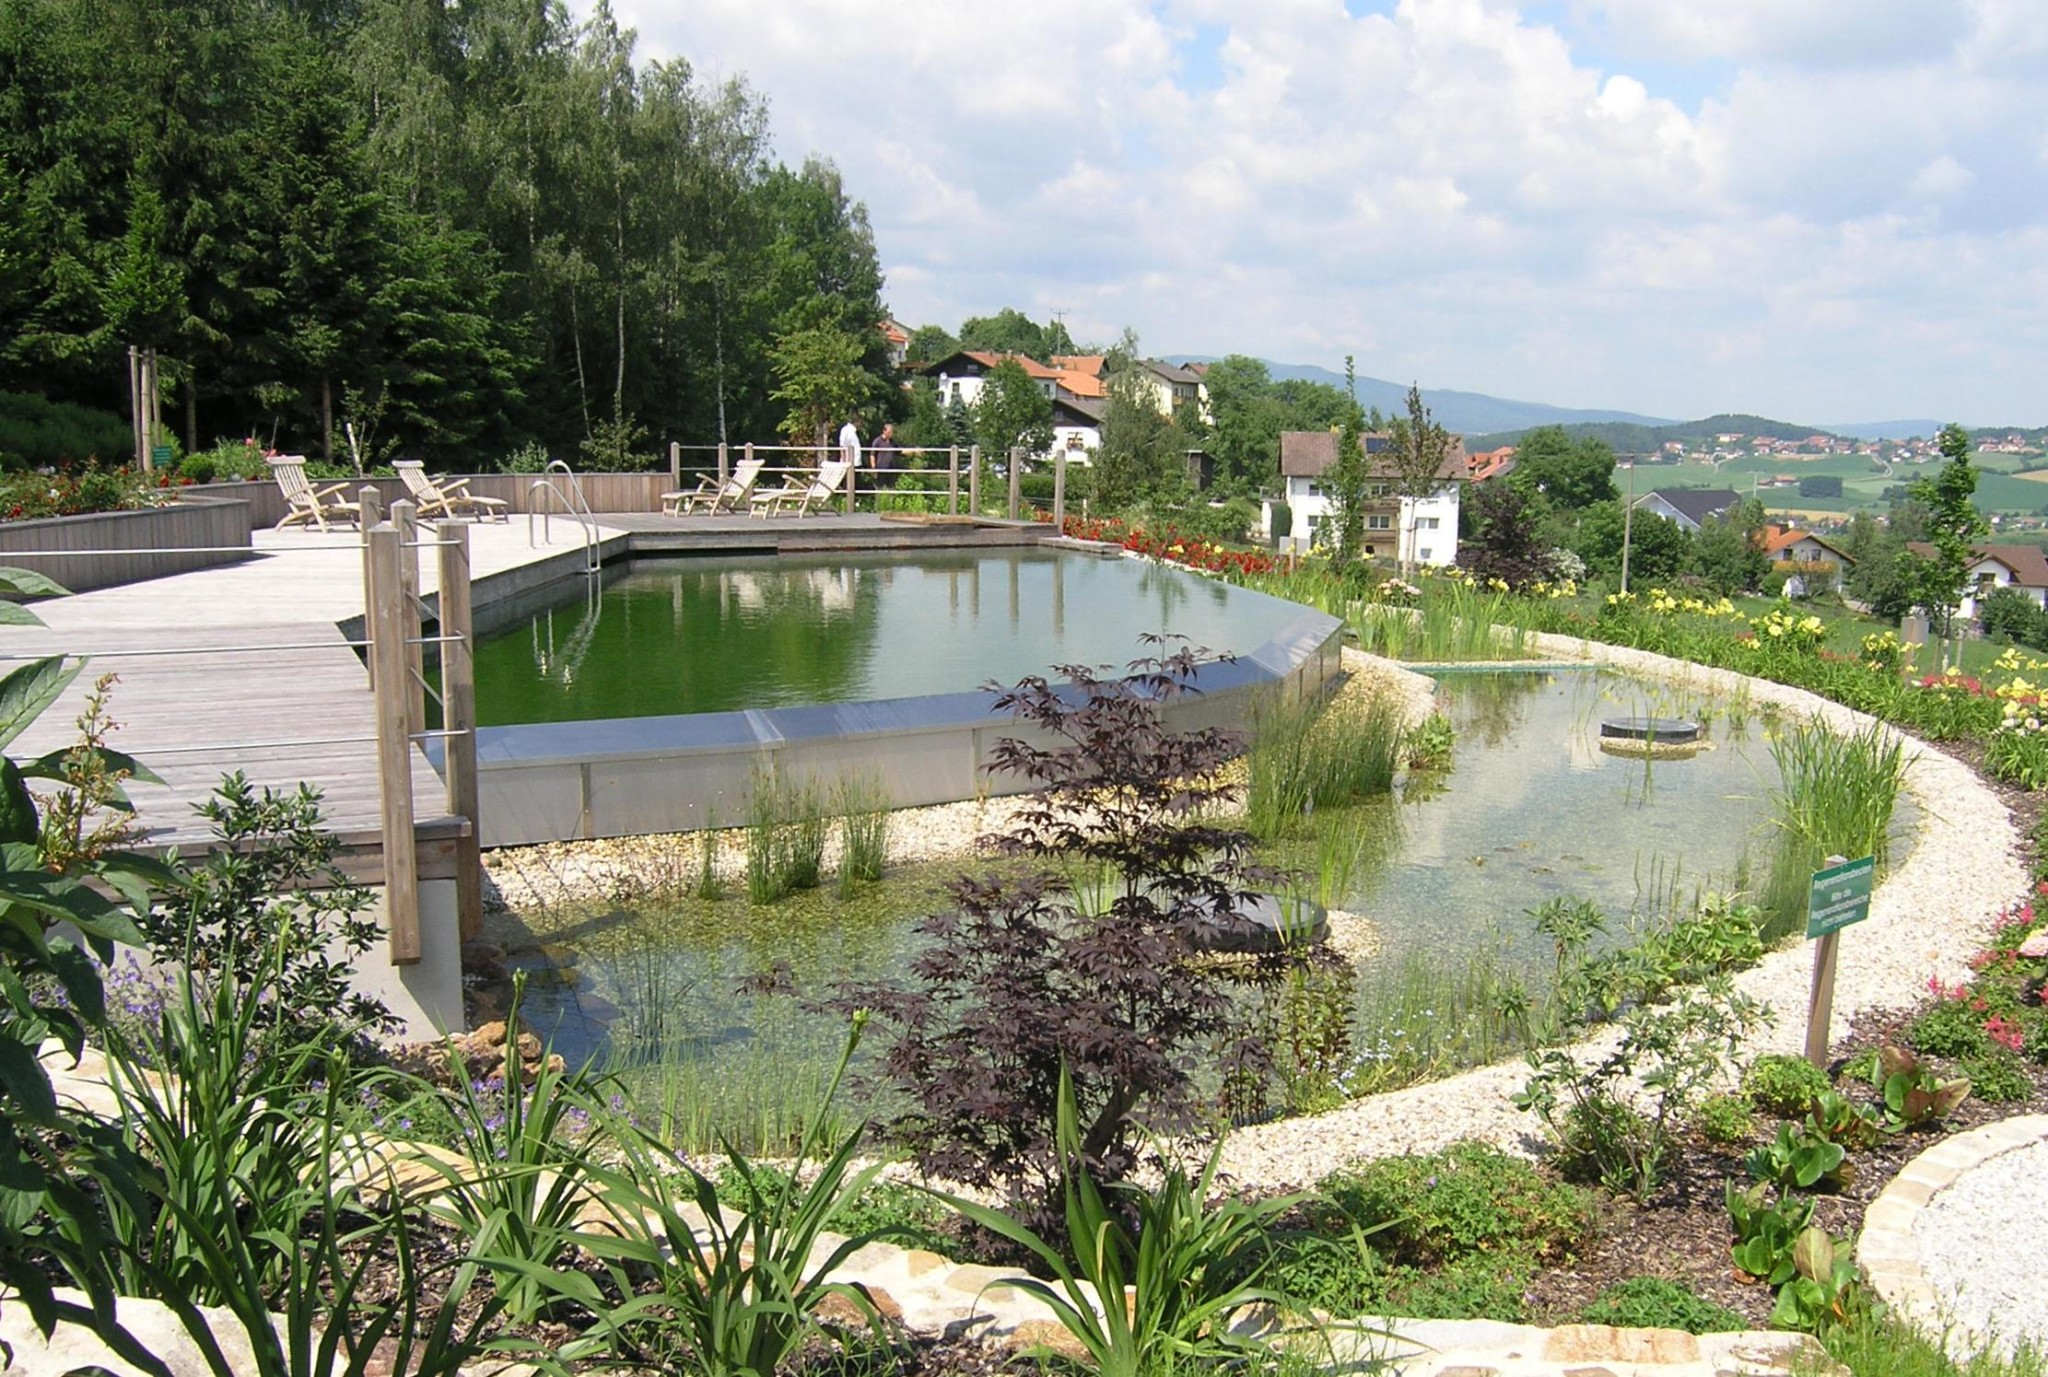 Natural swimming pools nsps garner interest in north for Construction piscine caoutchouc